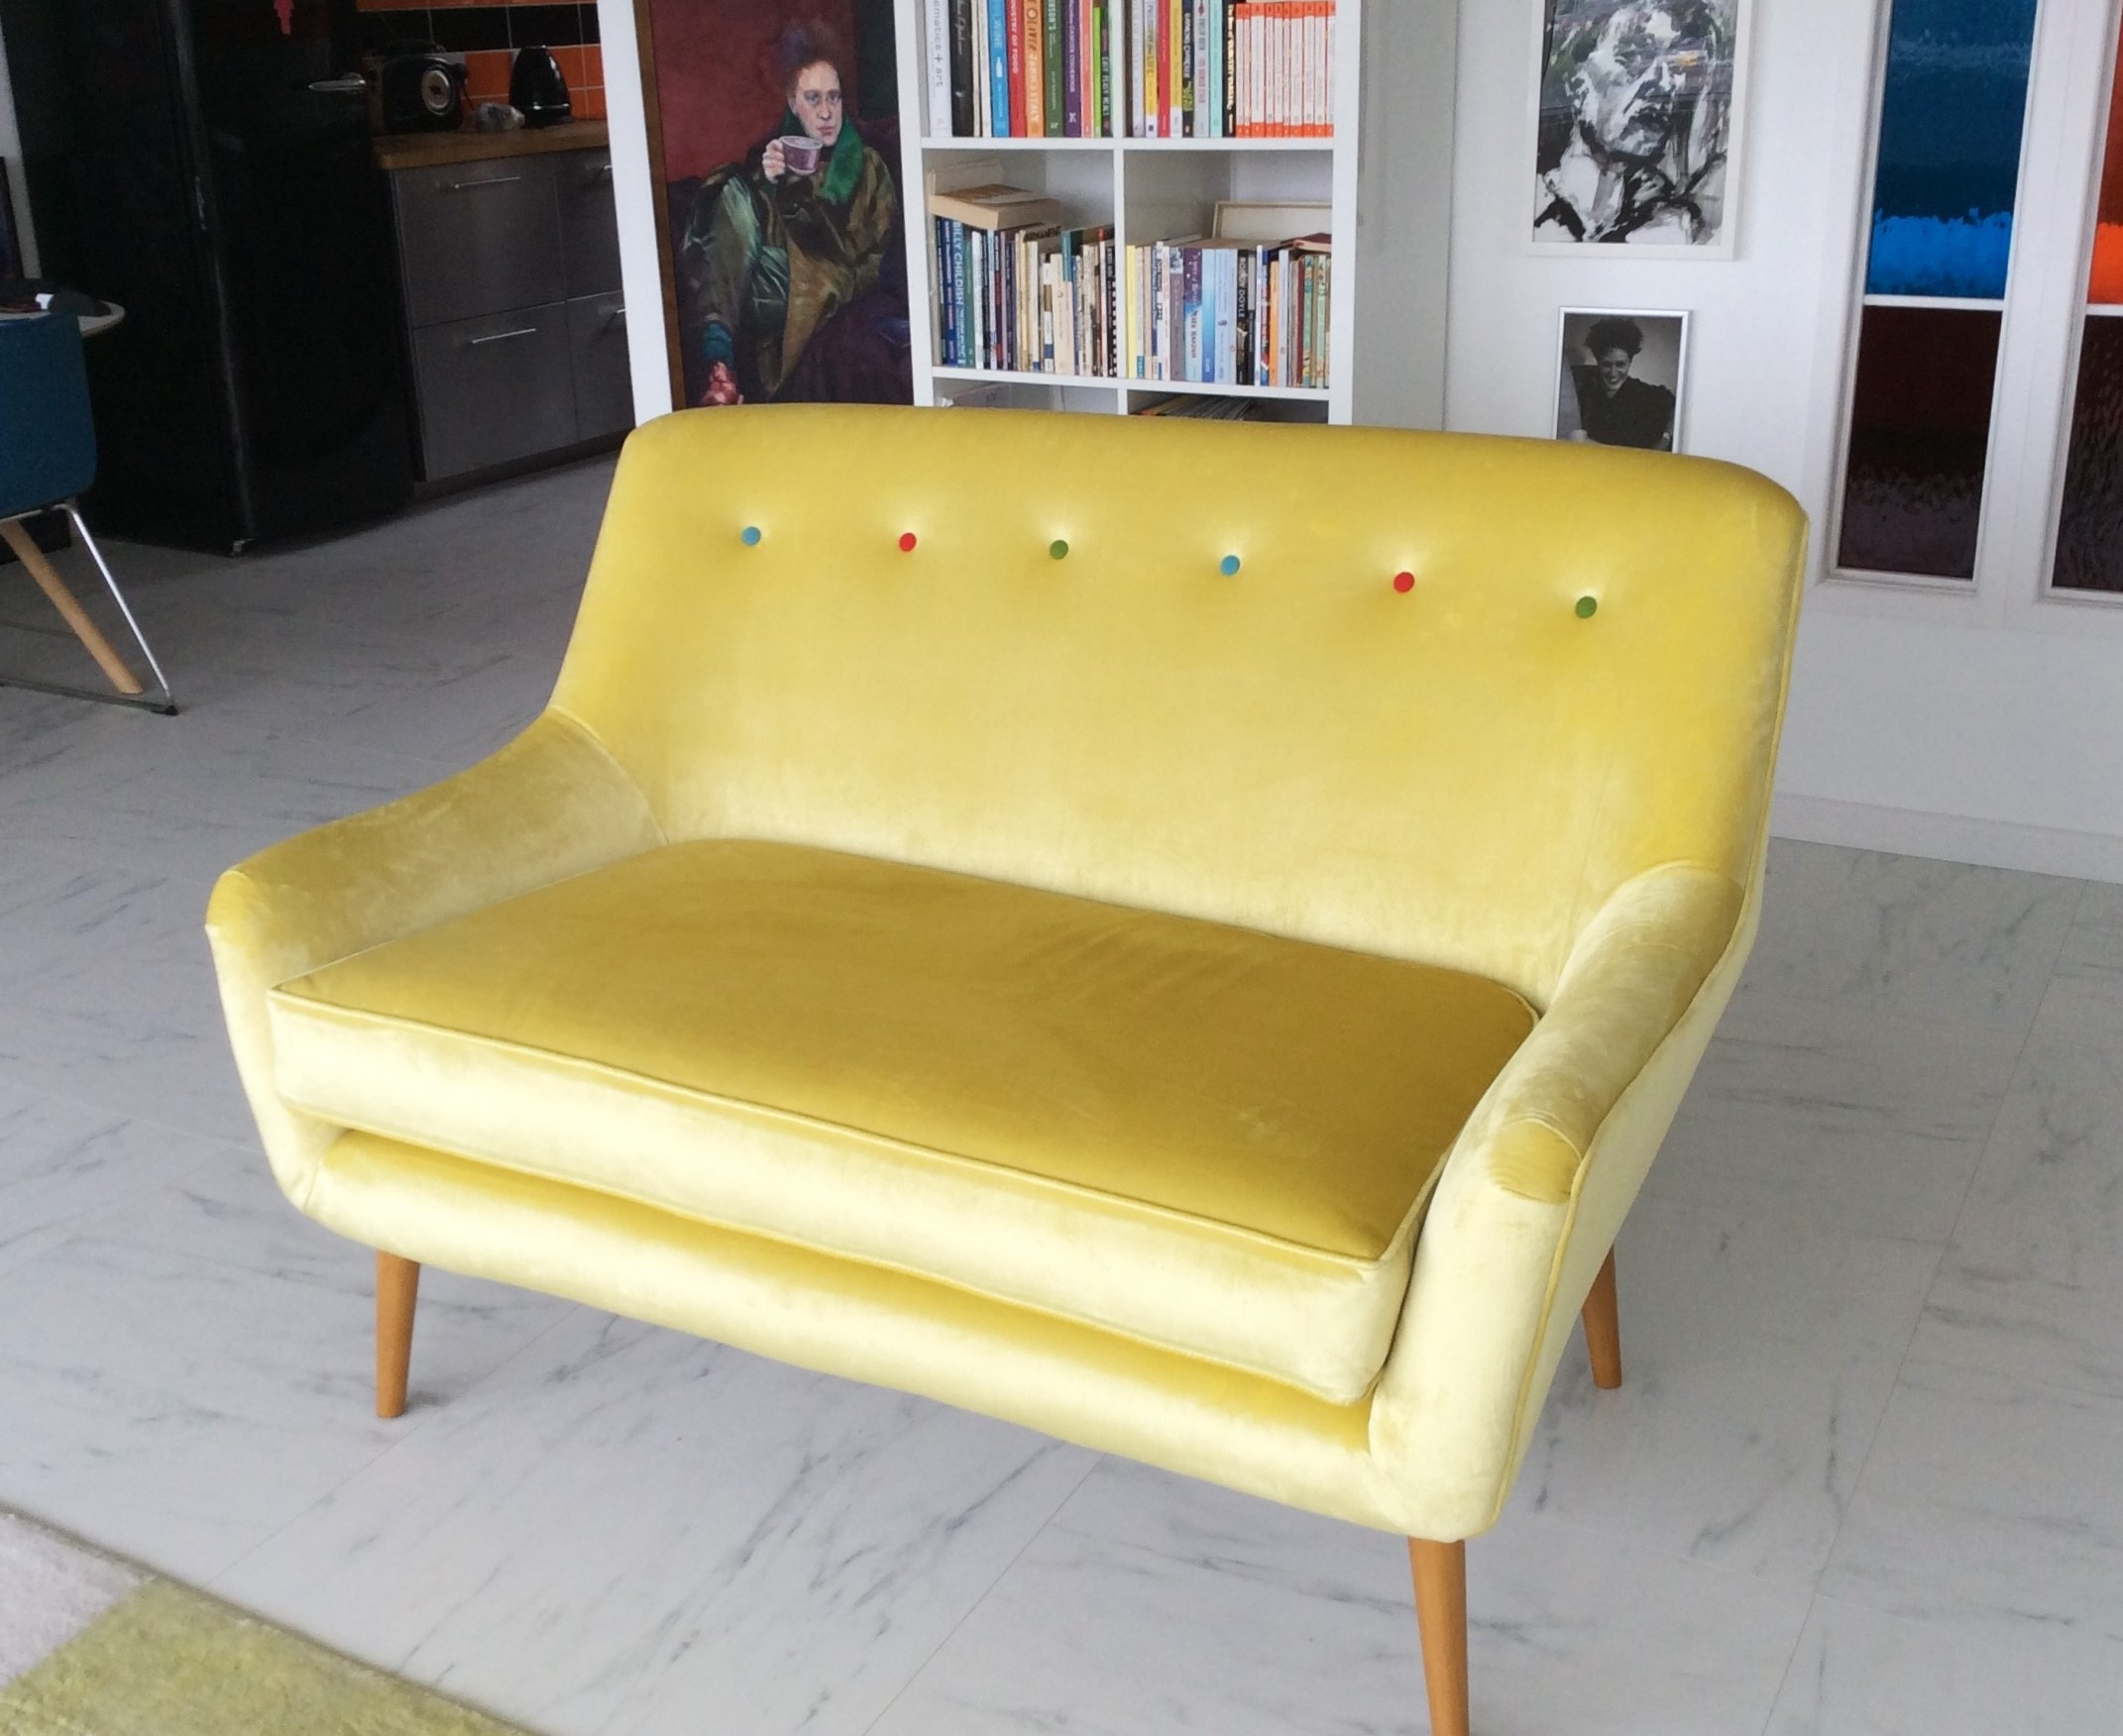 Retro Sofa Bristol Combine Retro And Modern Sofa Features With Our Blaise Sofa